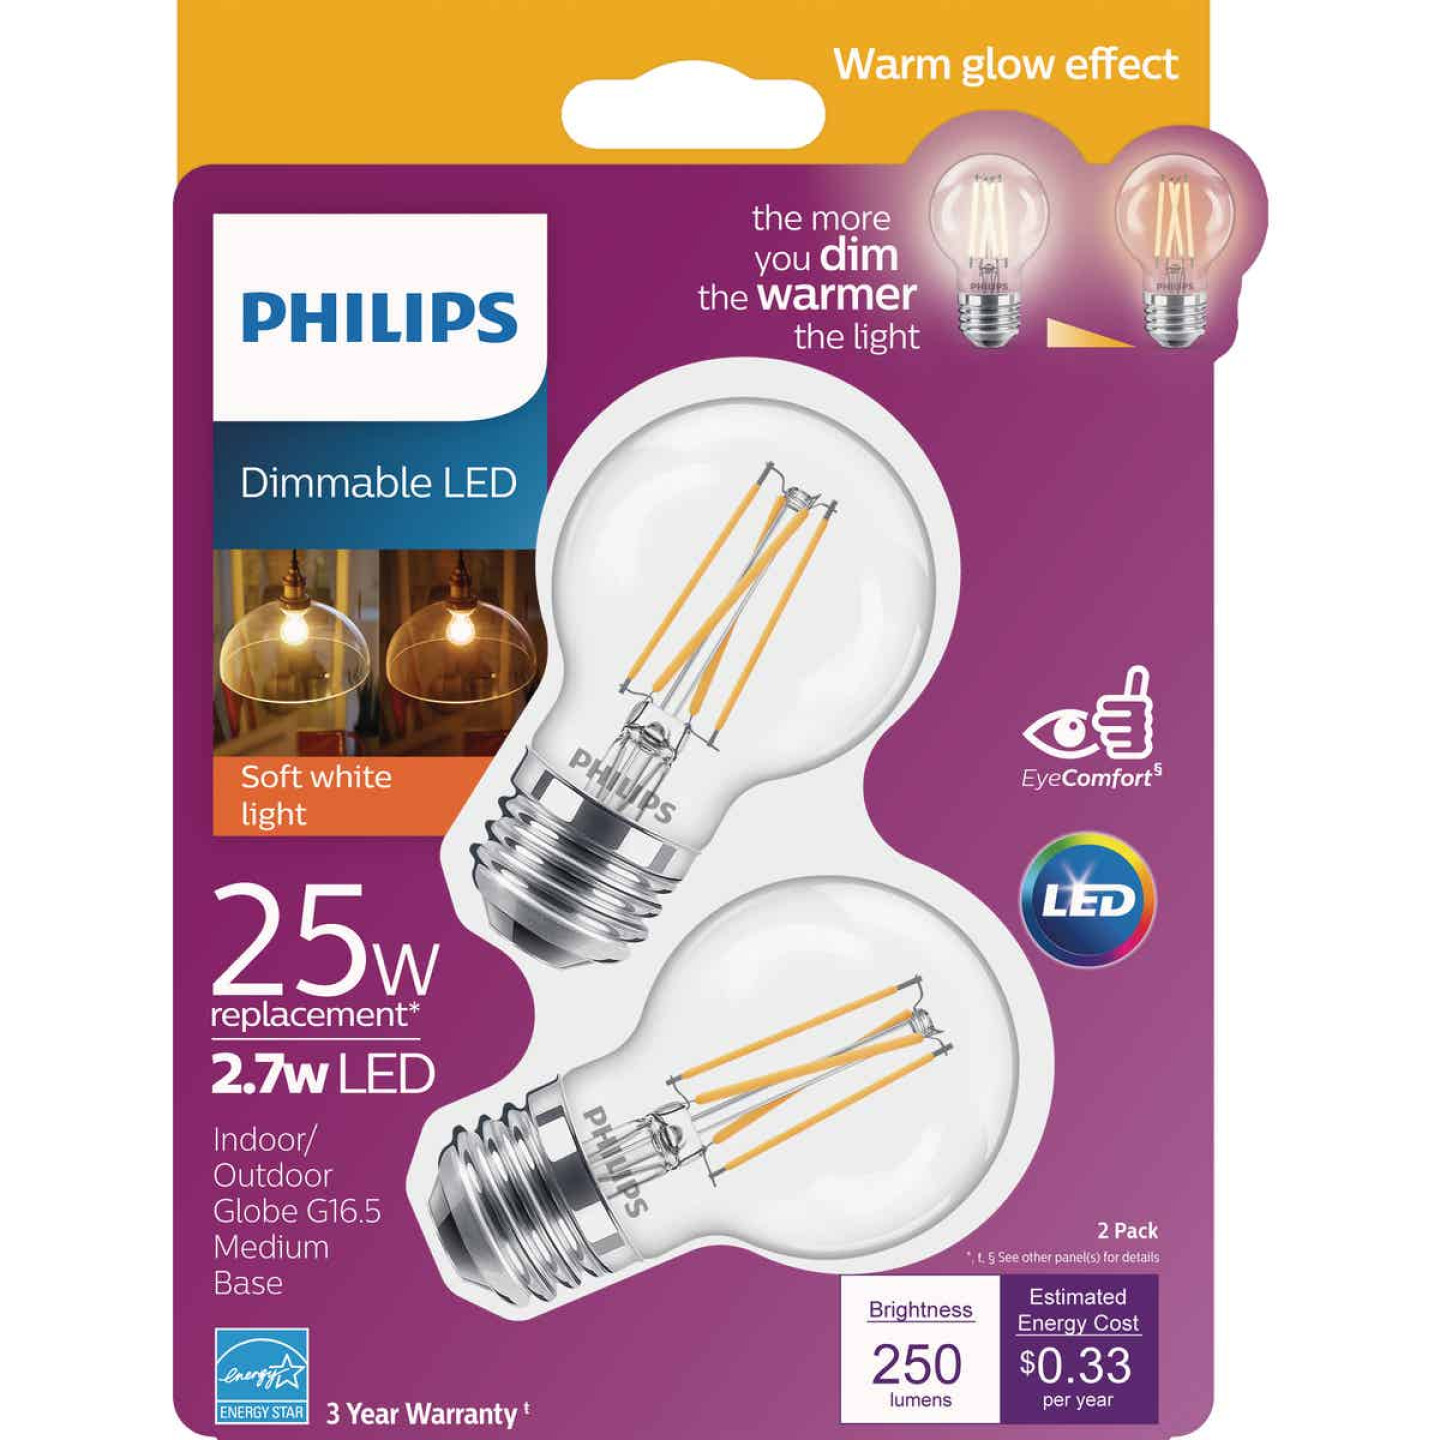 Philips Warm Glow 25W Equivalent Soft White Medium G16.5 LED Decorative Light Bulb, Title 20 (2-Pack) Image 1